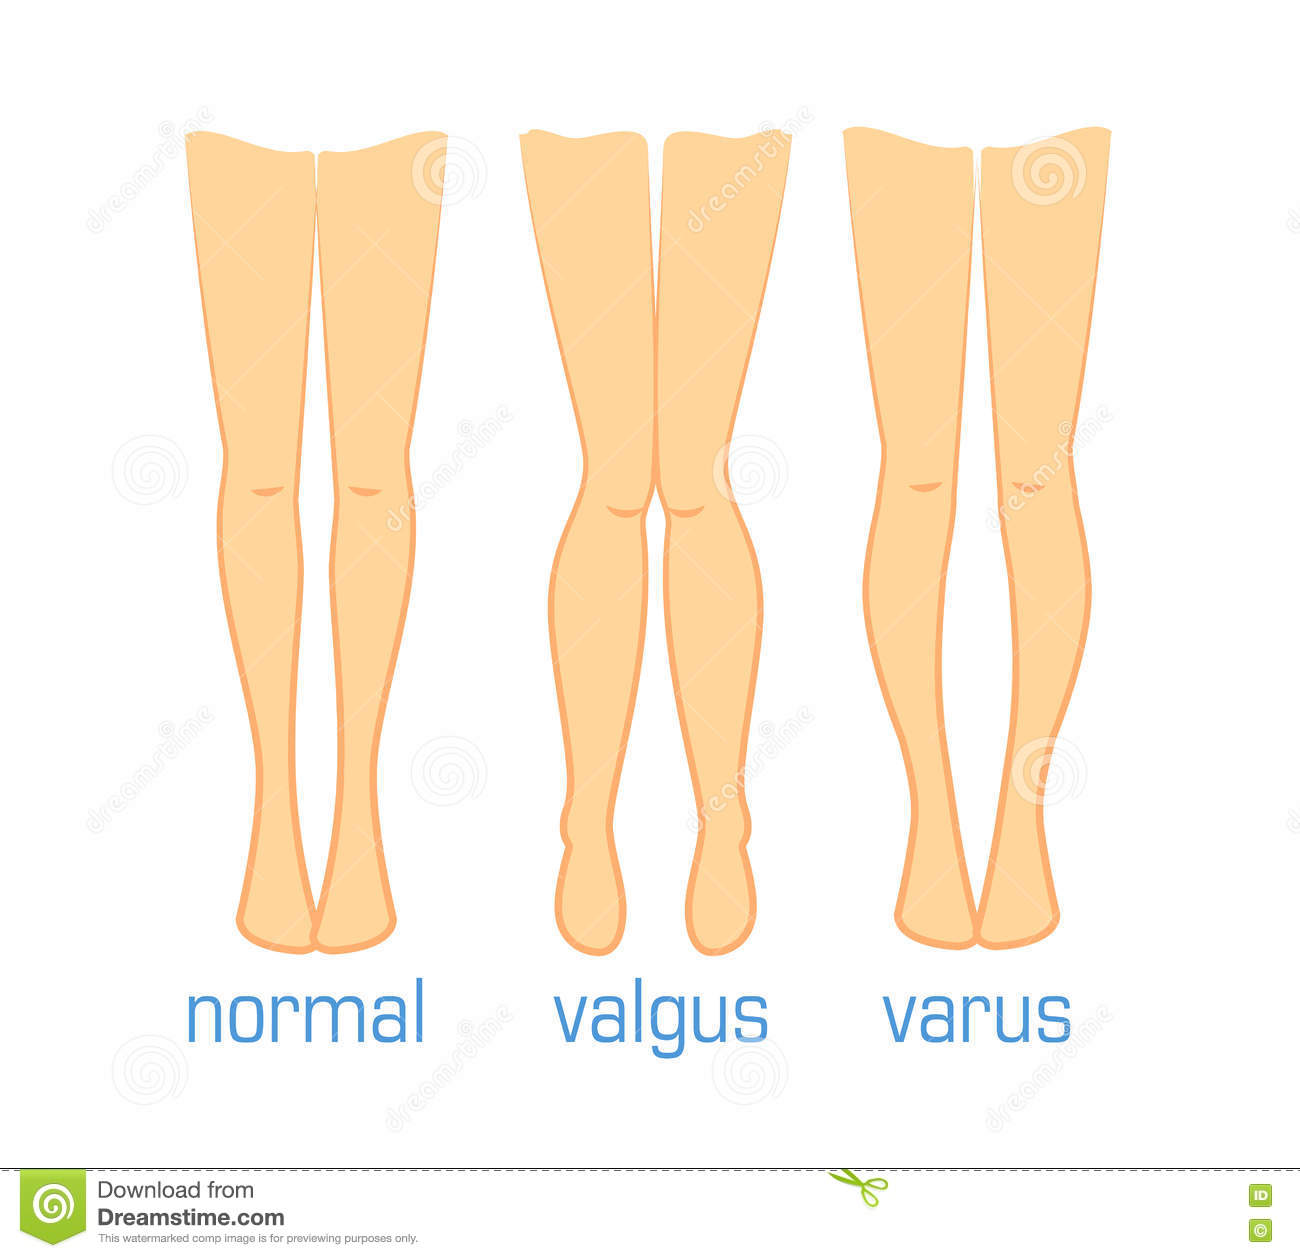 Valgus Varus And Normal Stock Vector - Image: 75576270